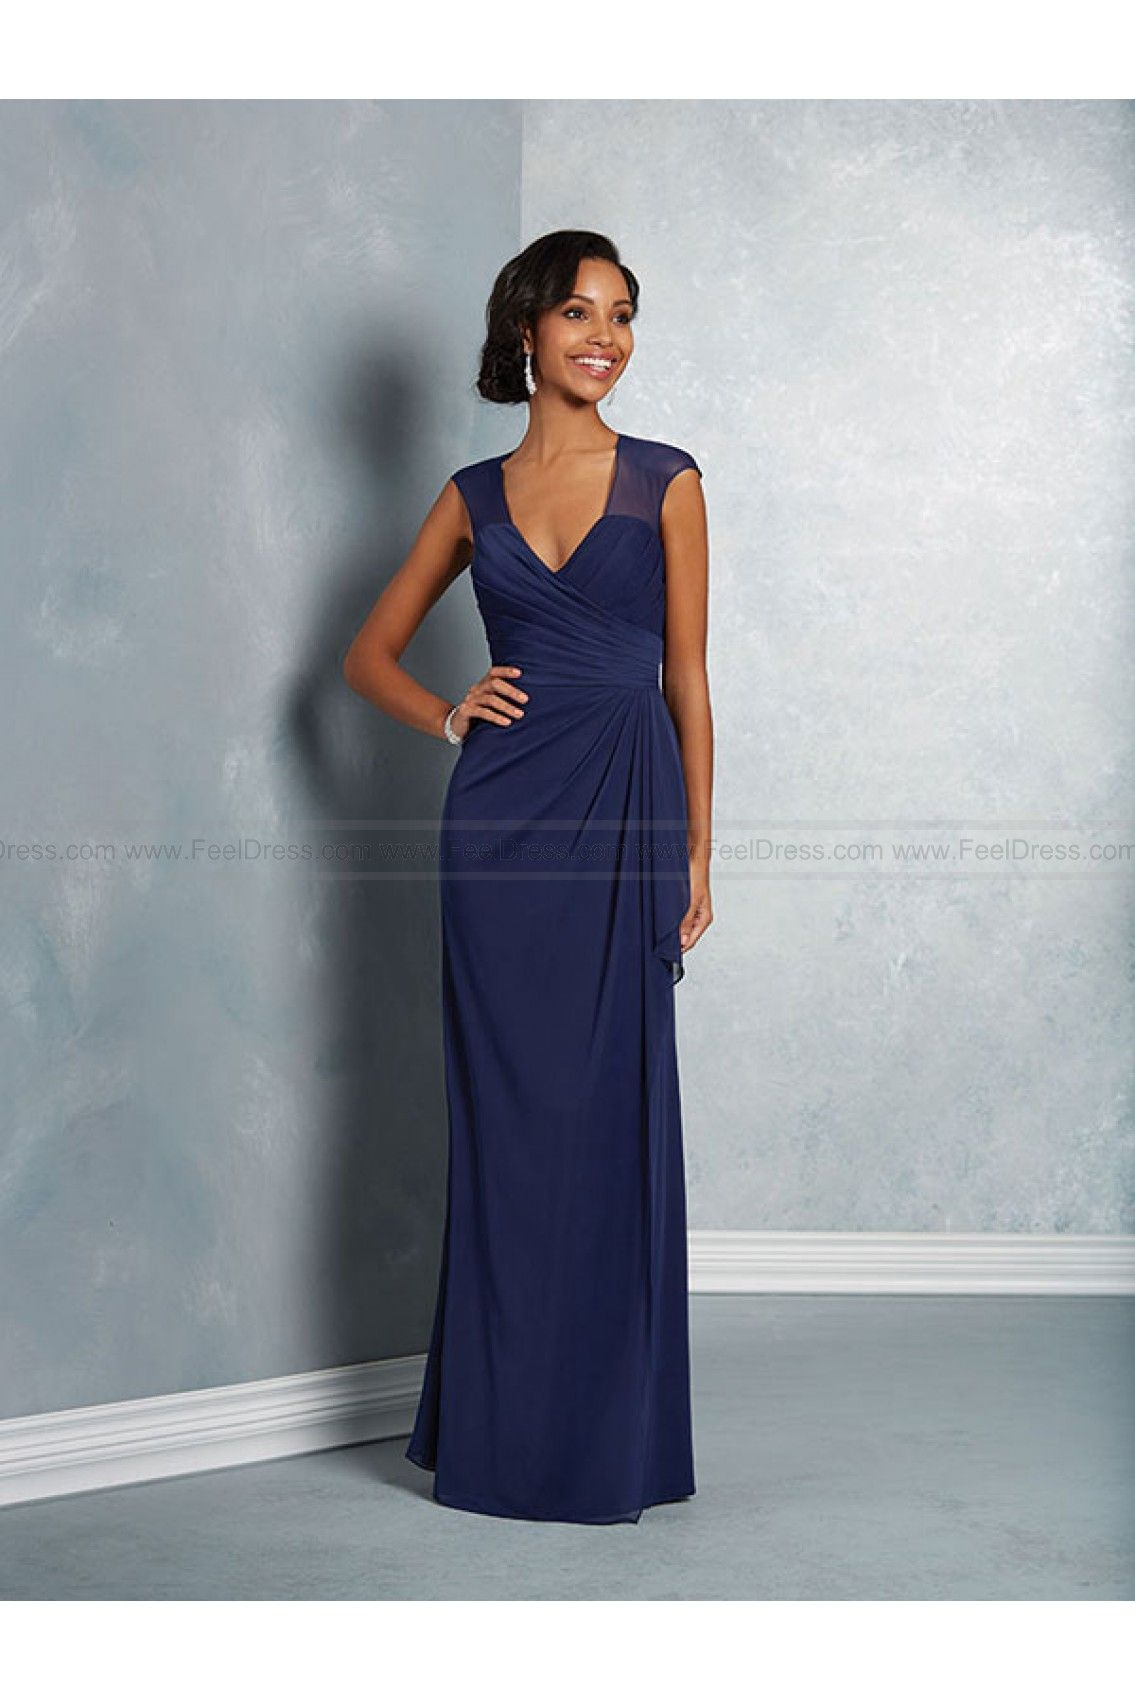 Alfred angelo bridesmaid dress style 7412 new alfred angelo alfred angelo bridesmaid dress style 7412 new ombrellifo Choice Image